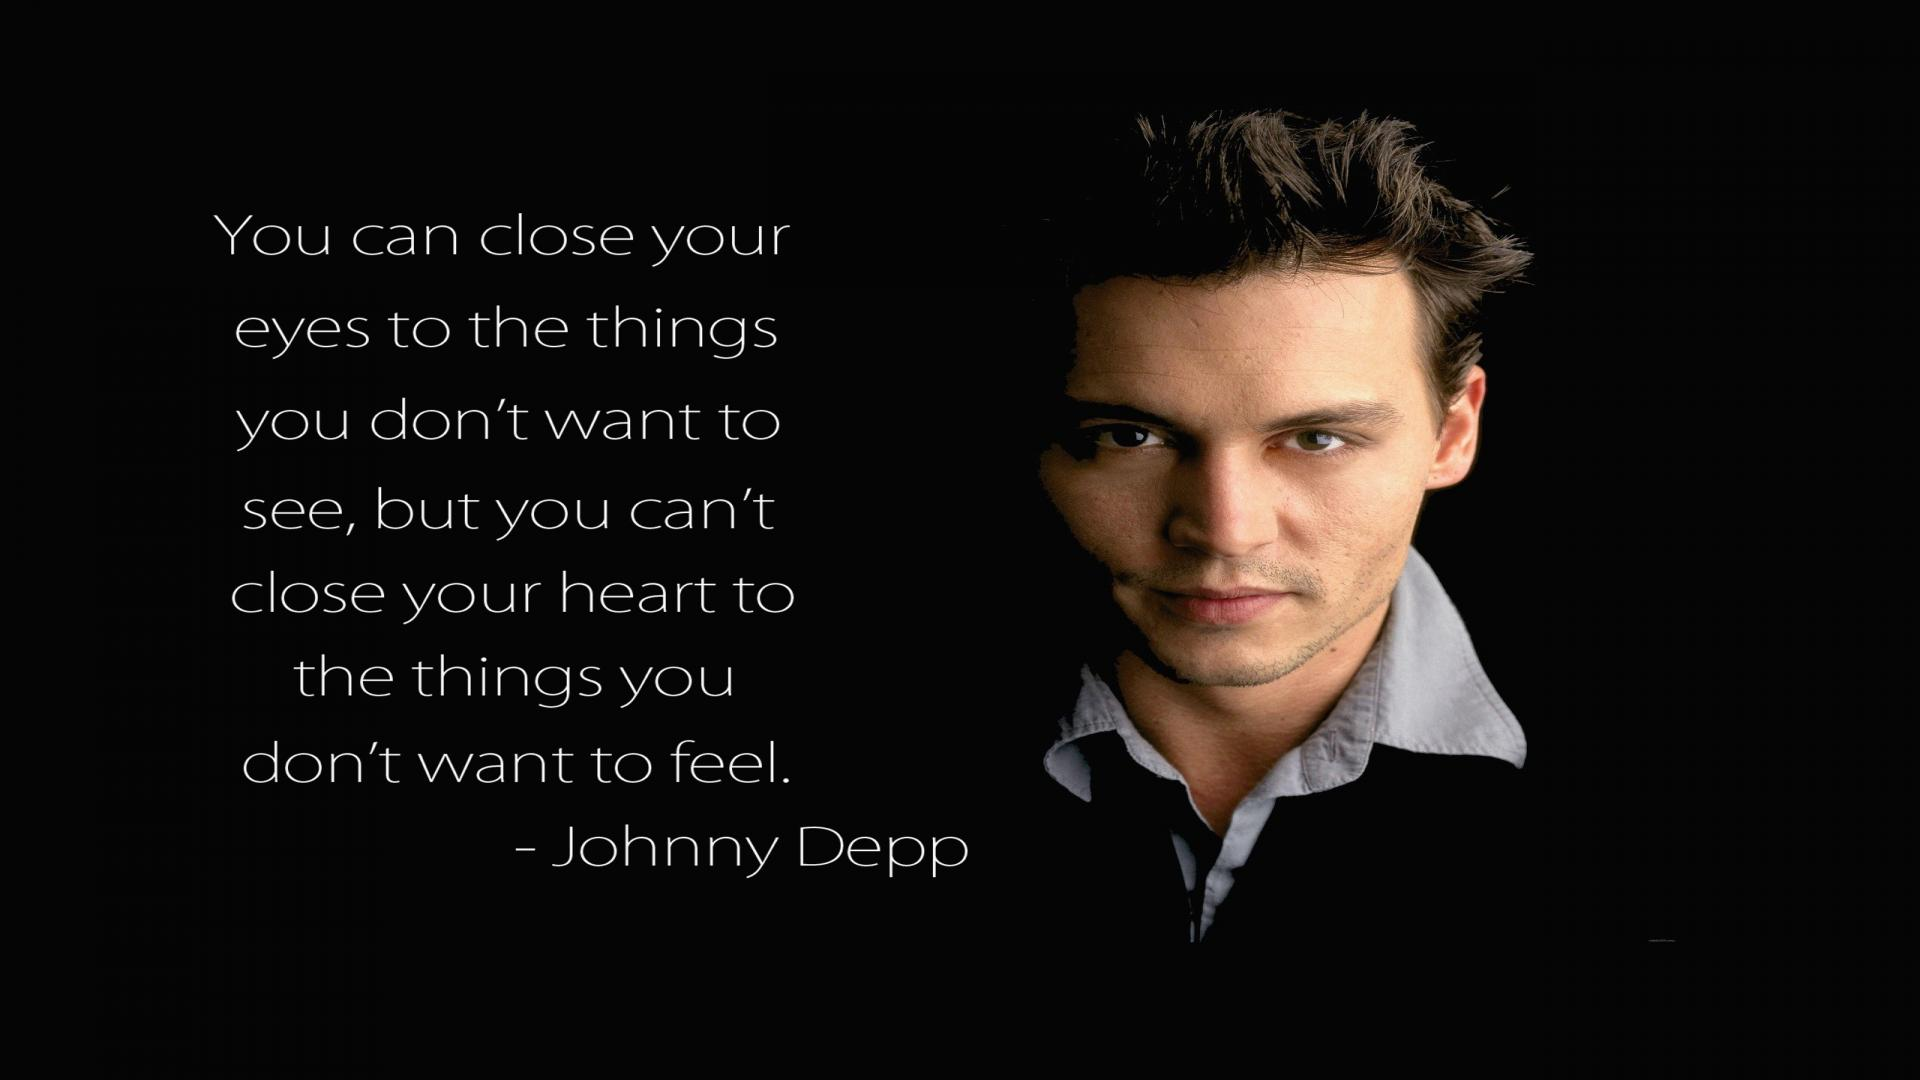 55 Inspirational Johnny Depp Quotes & Sayings On Love And Life